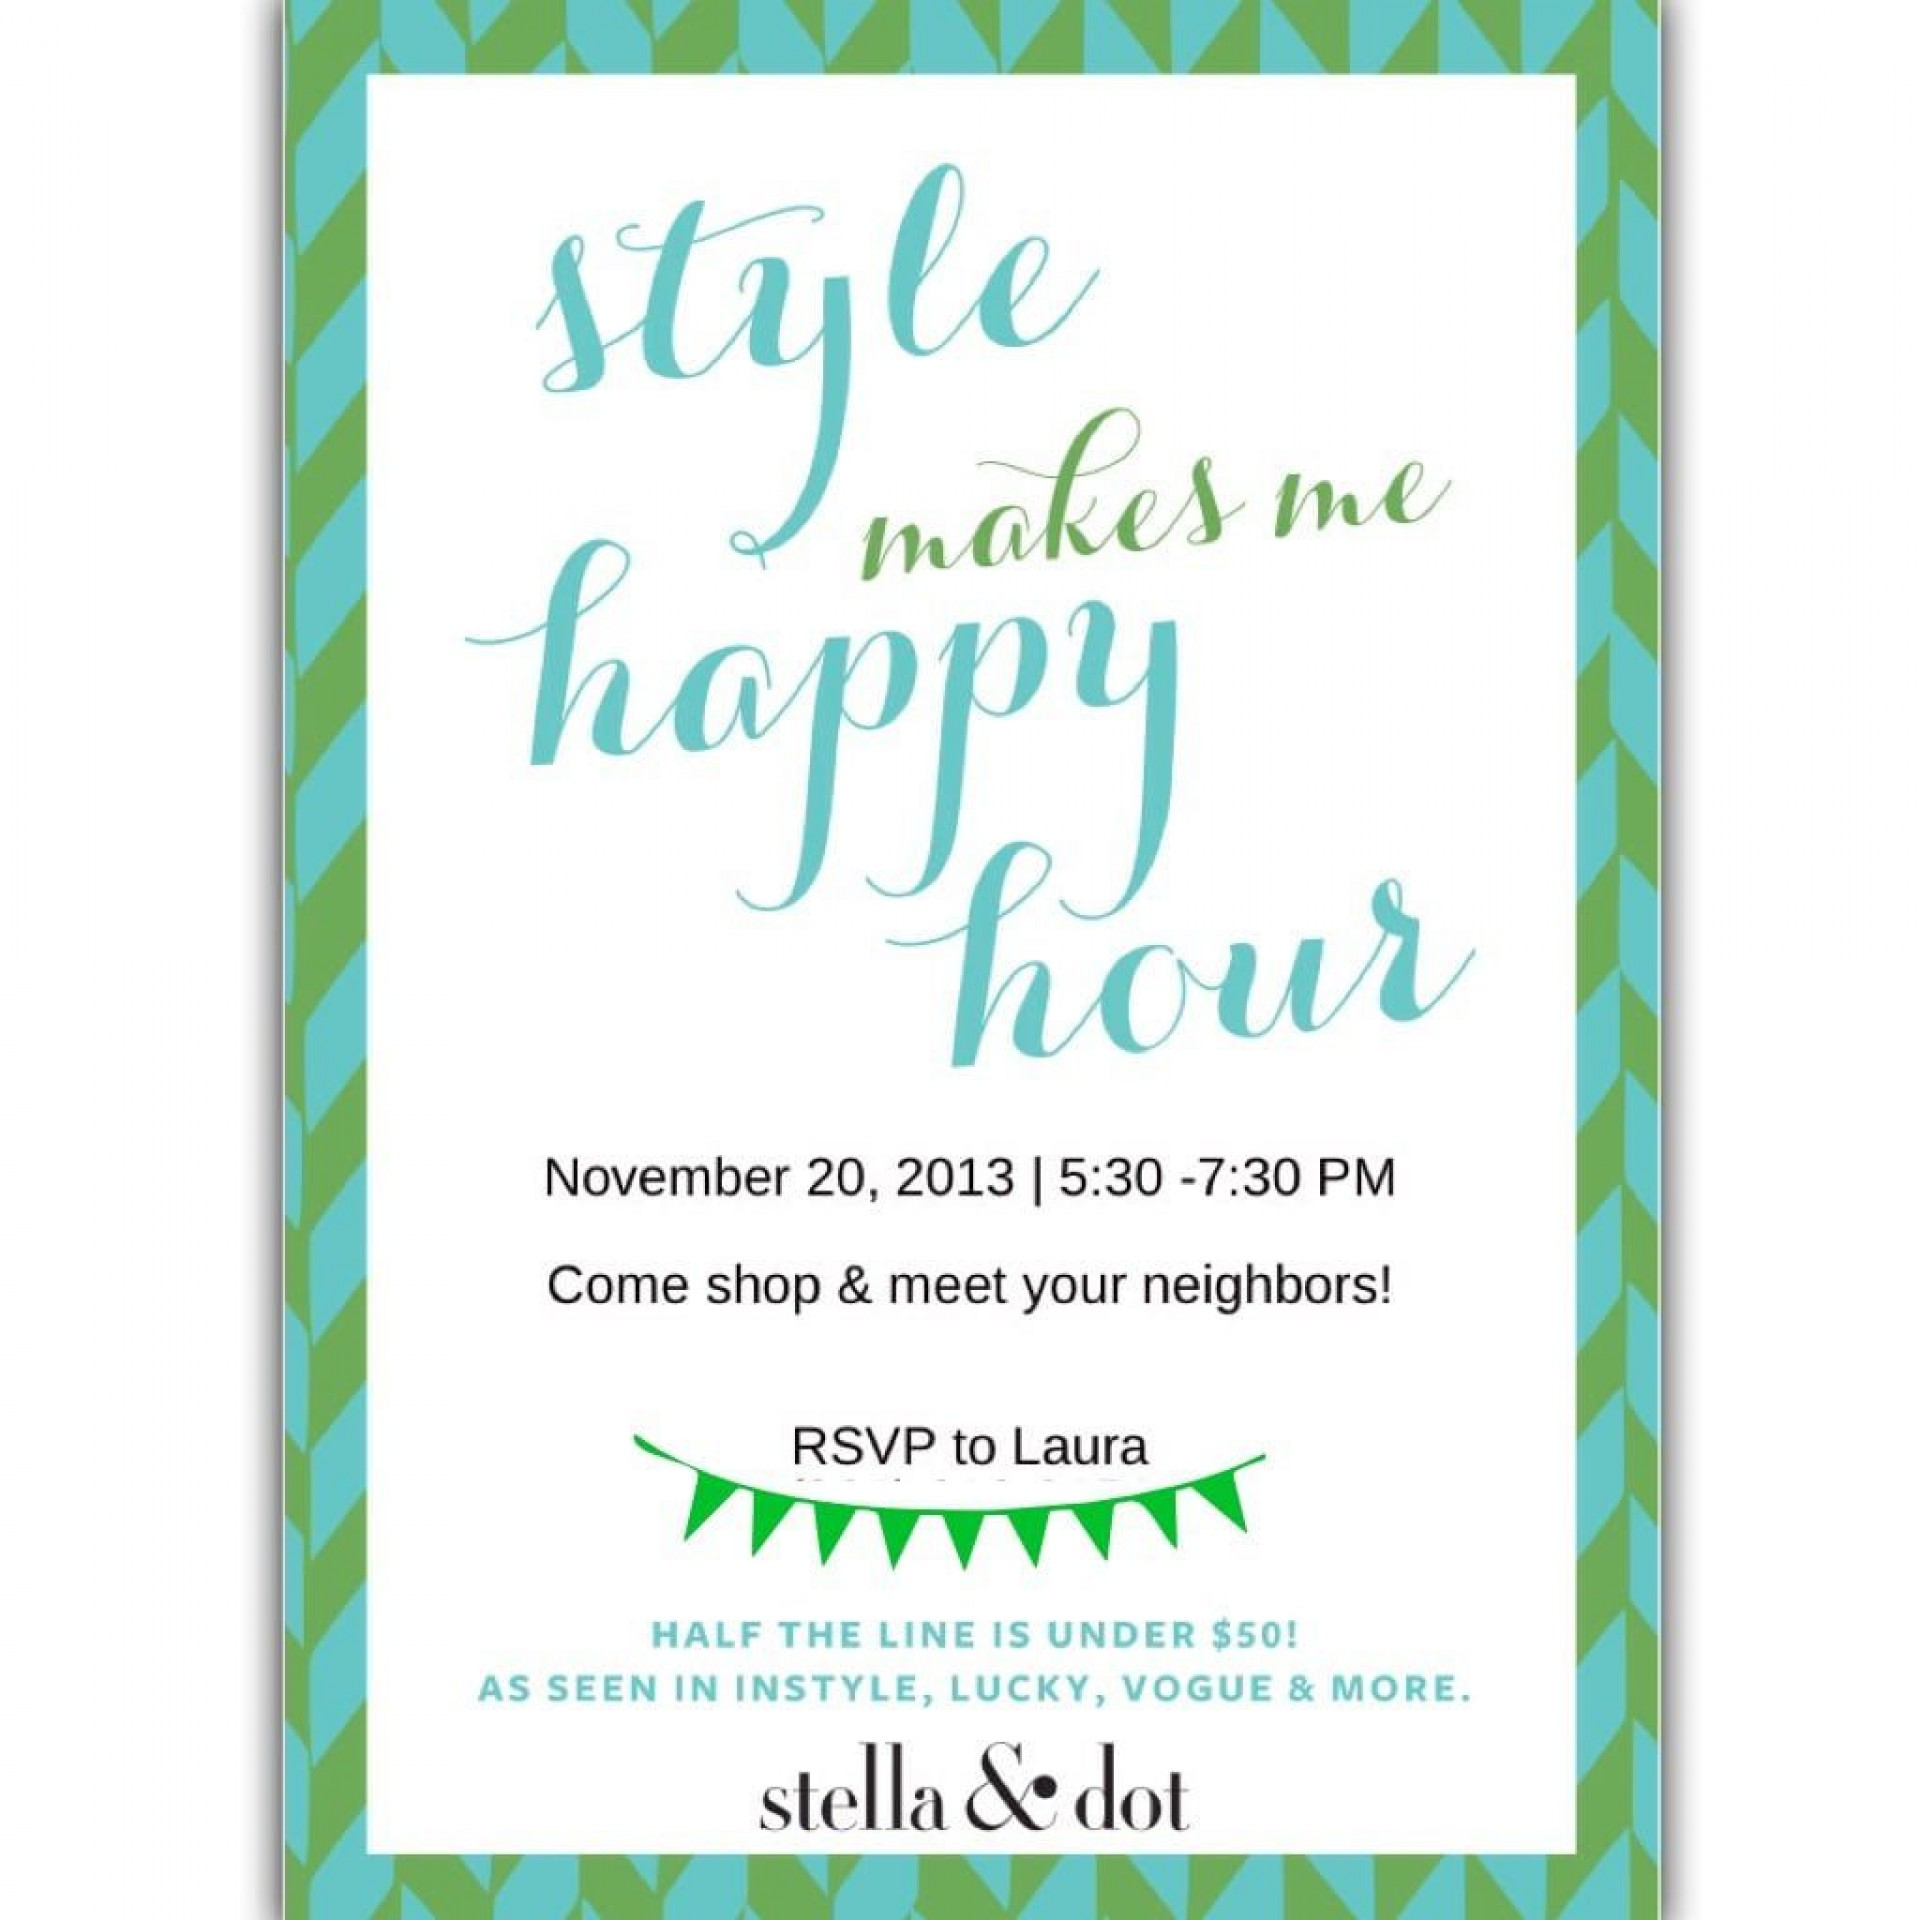 009 Fantastic Happy Hour Invitation Template Concept  Templates Free Word Farewell1920